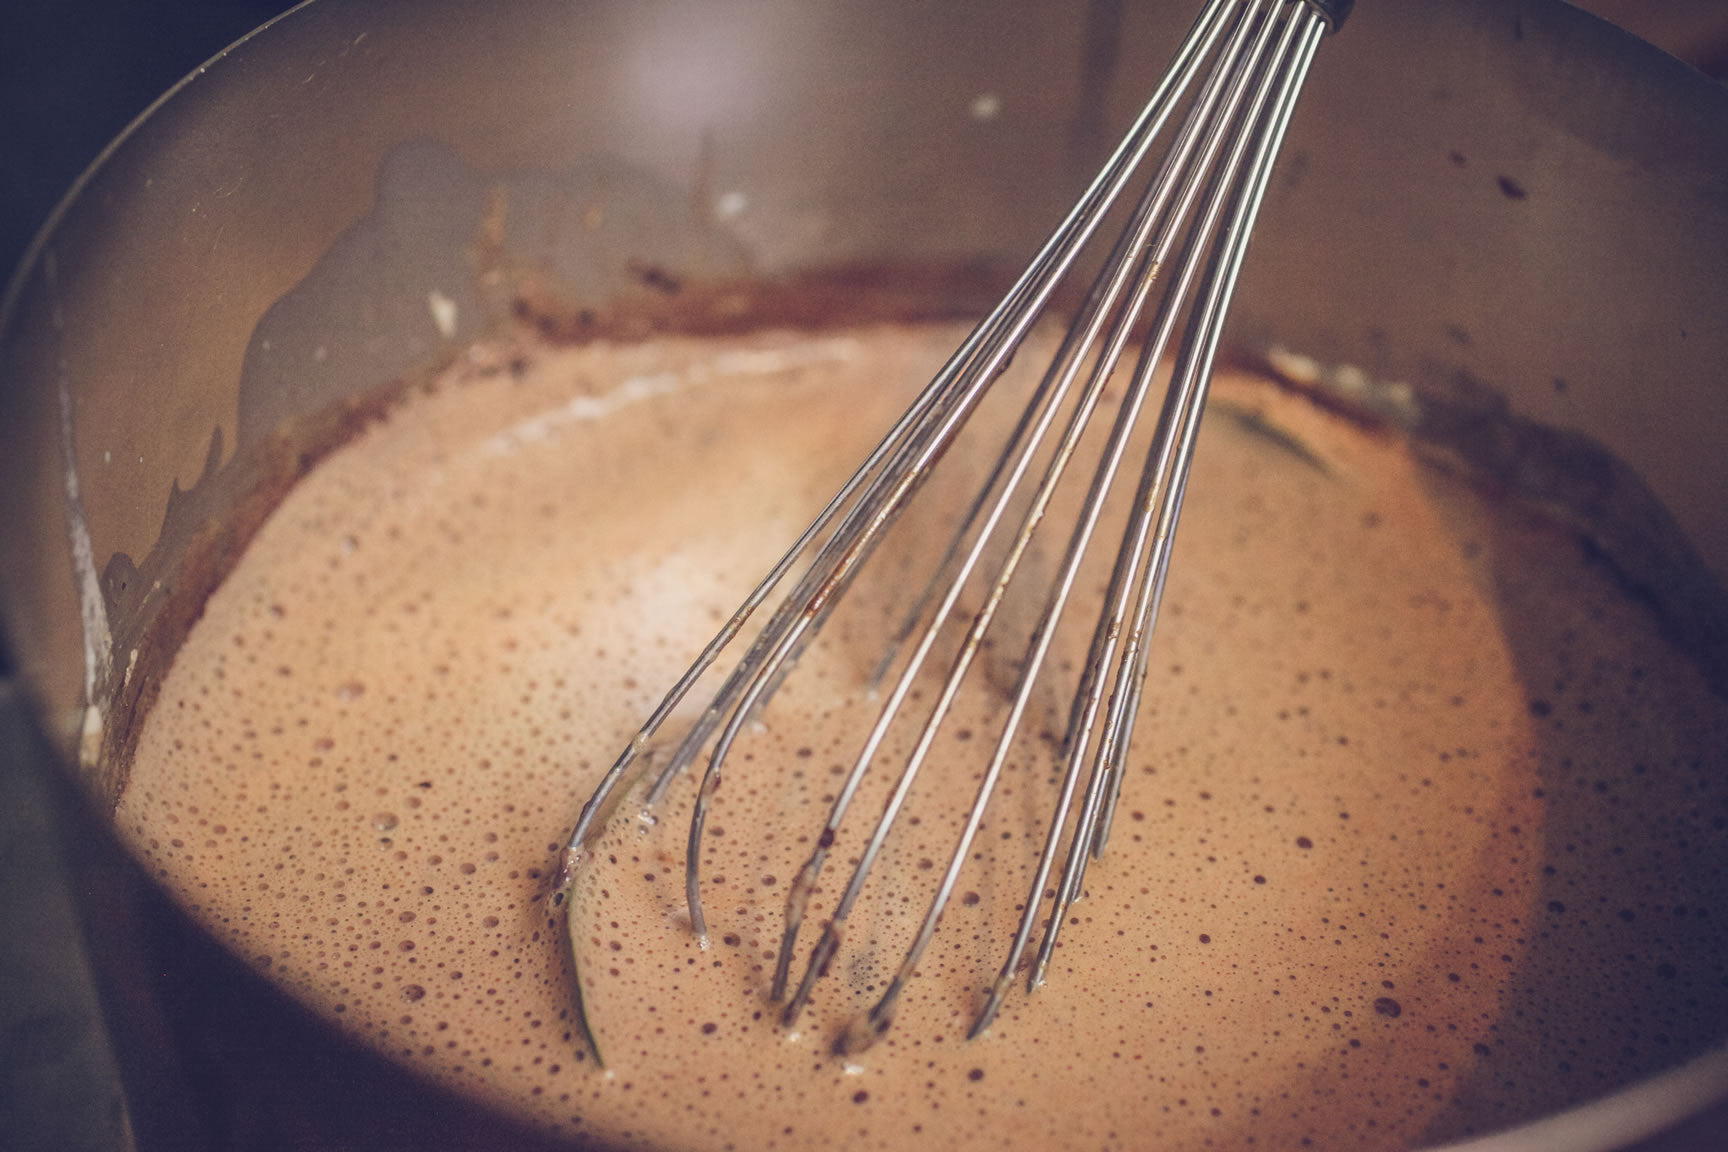 whisk over heat